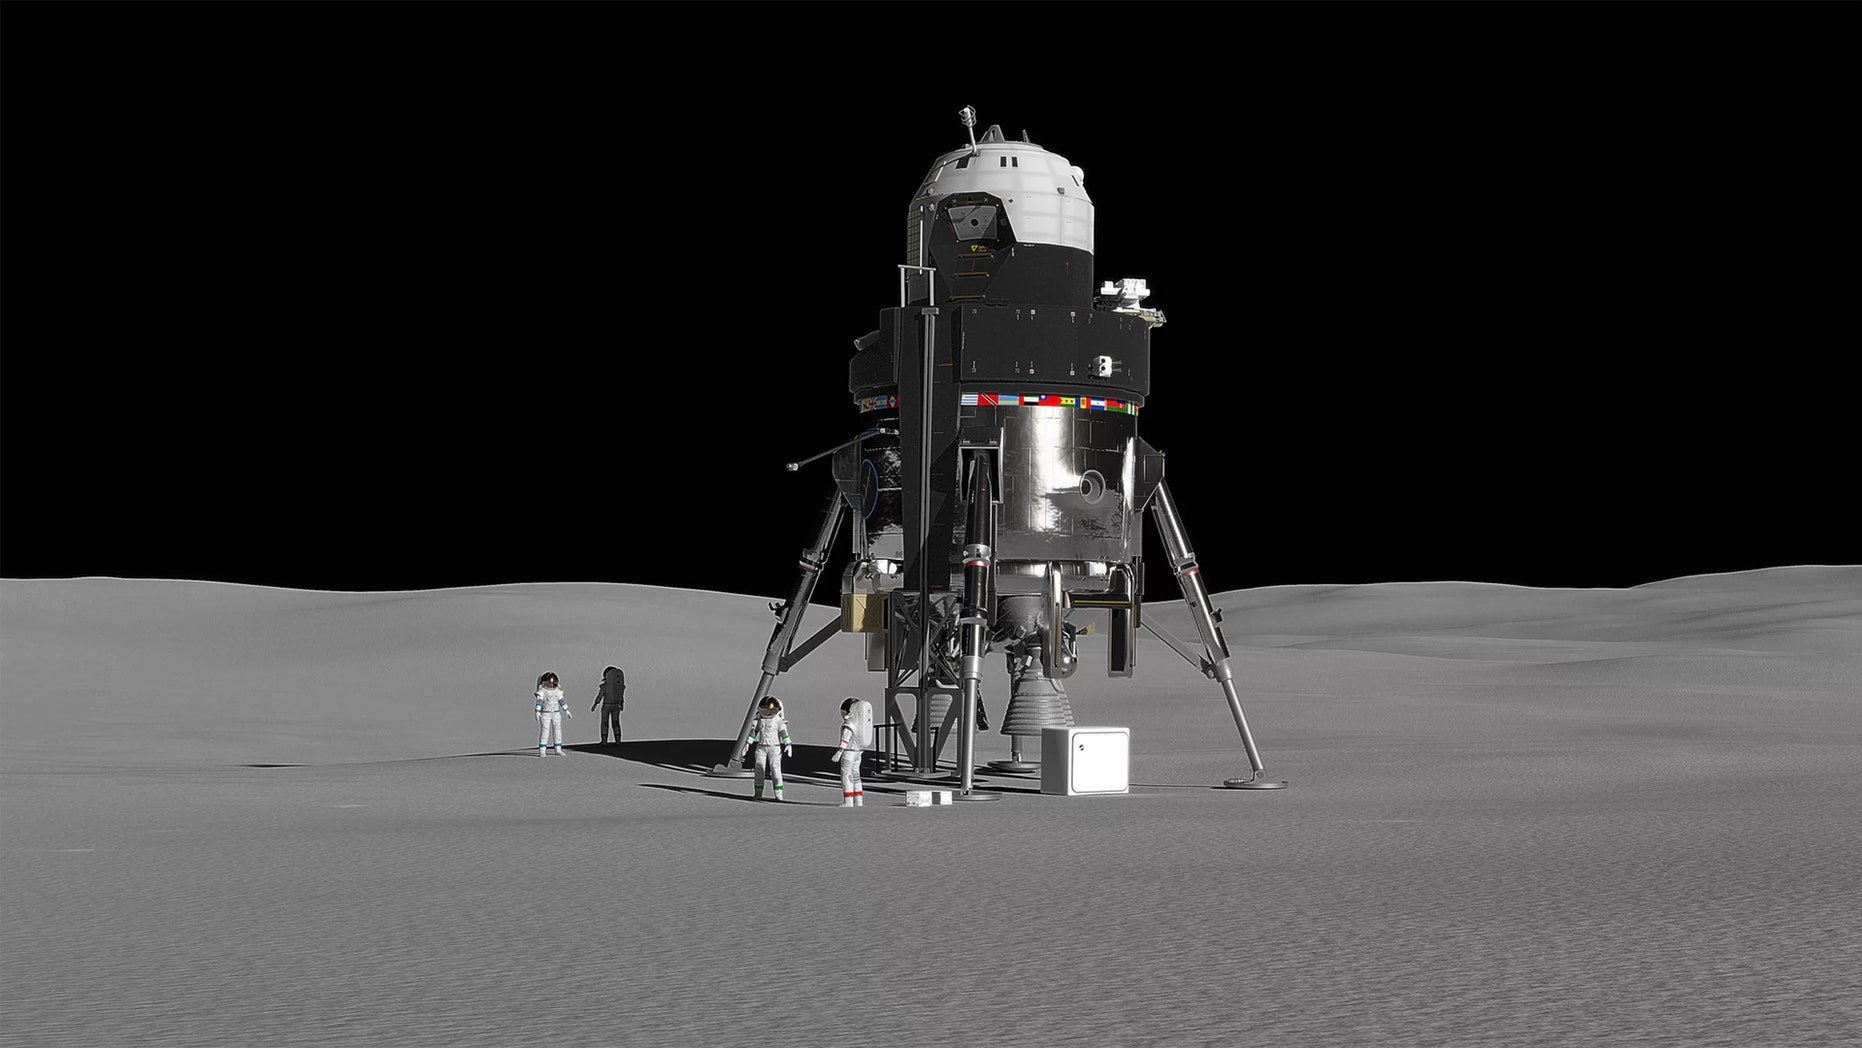 Lockheed Martin unveils lunar lander concept meant send astronauts to the moon